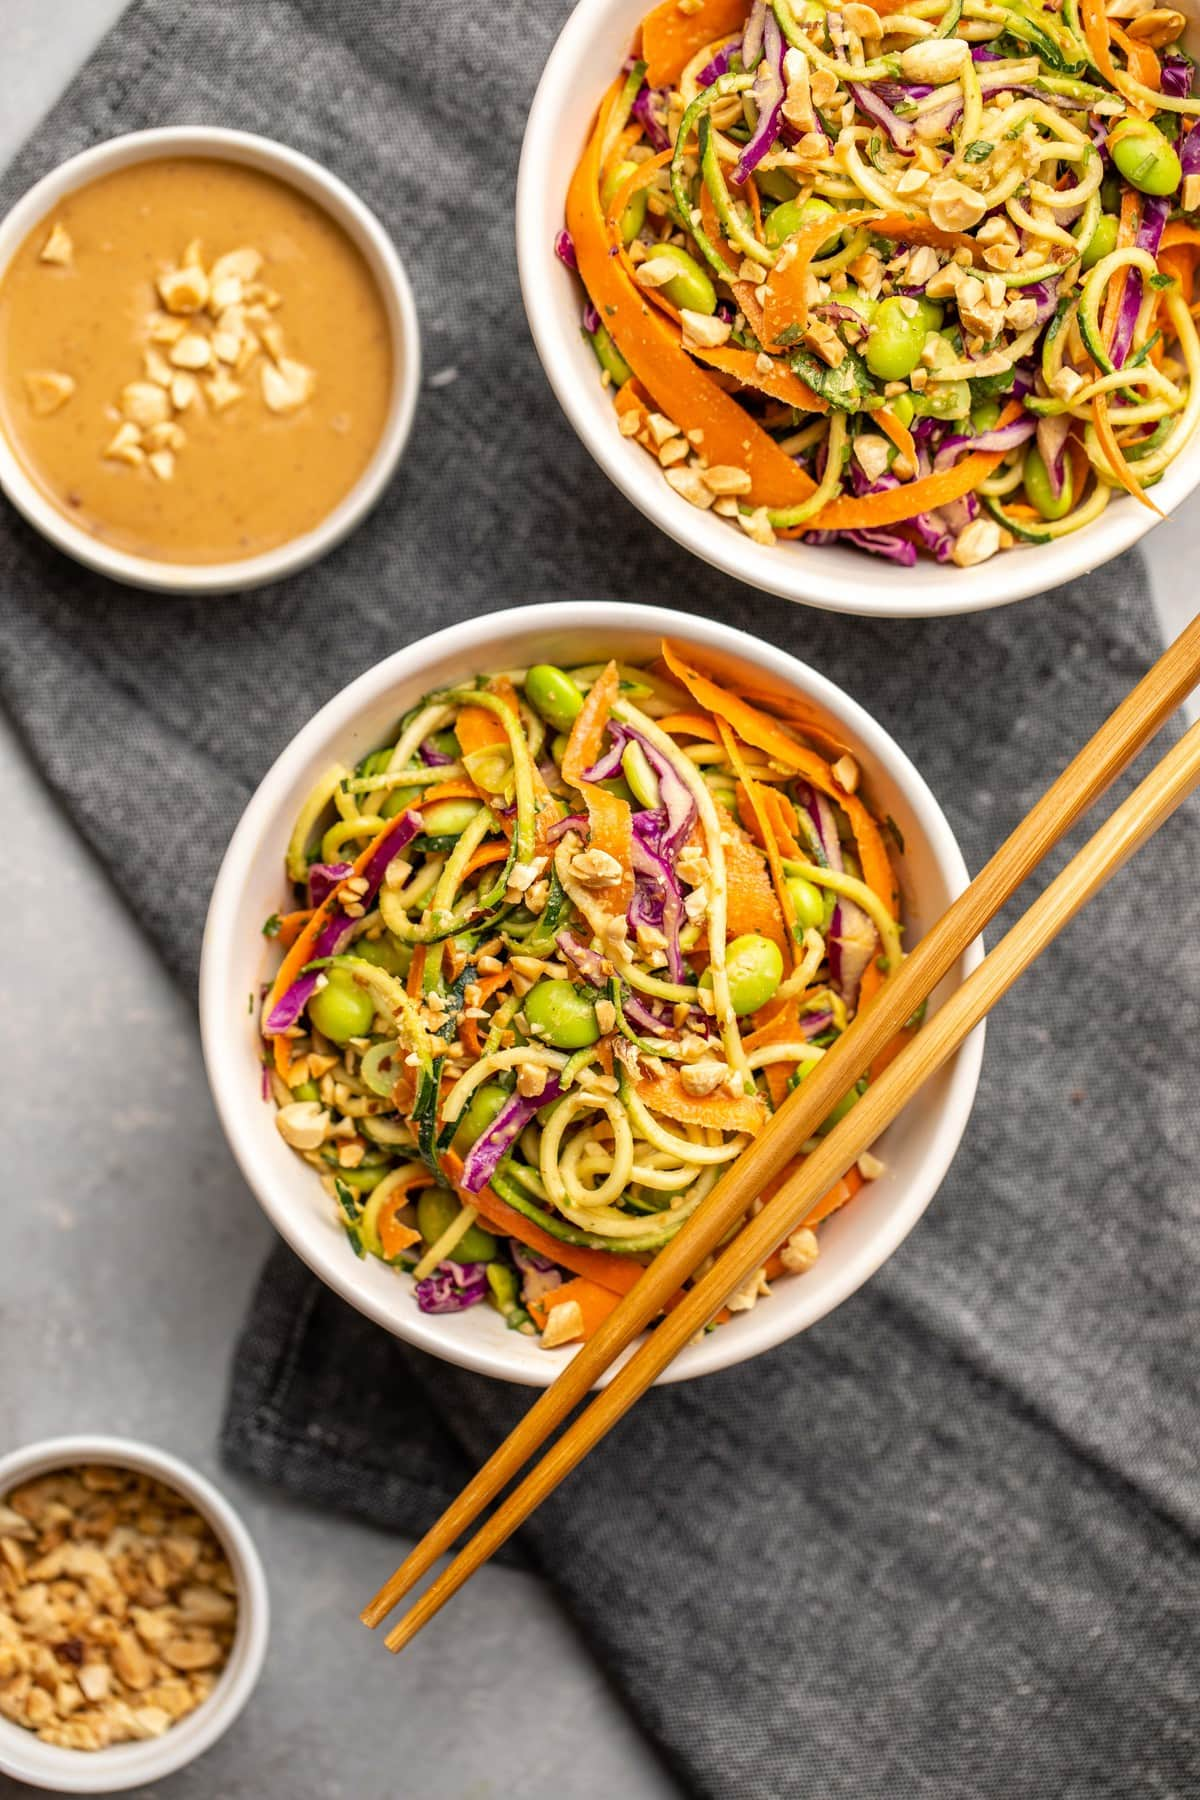 two white bowls of zucchini noodle salad with peanut sauce and wooden chopsticks